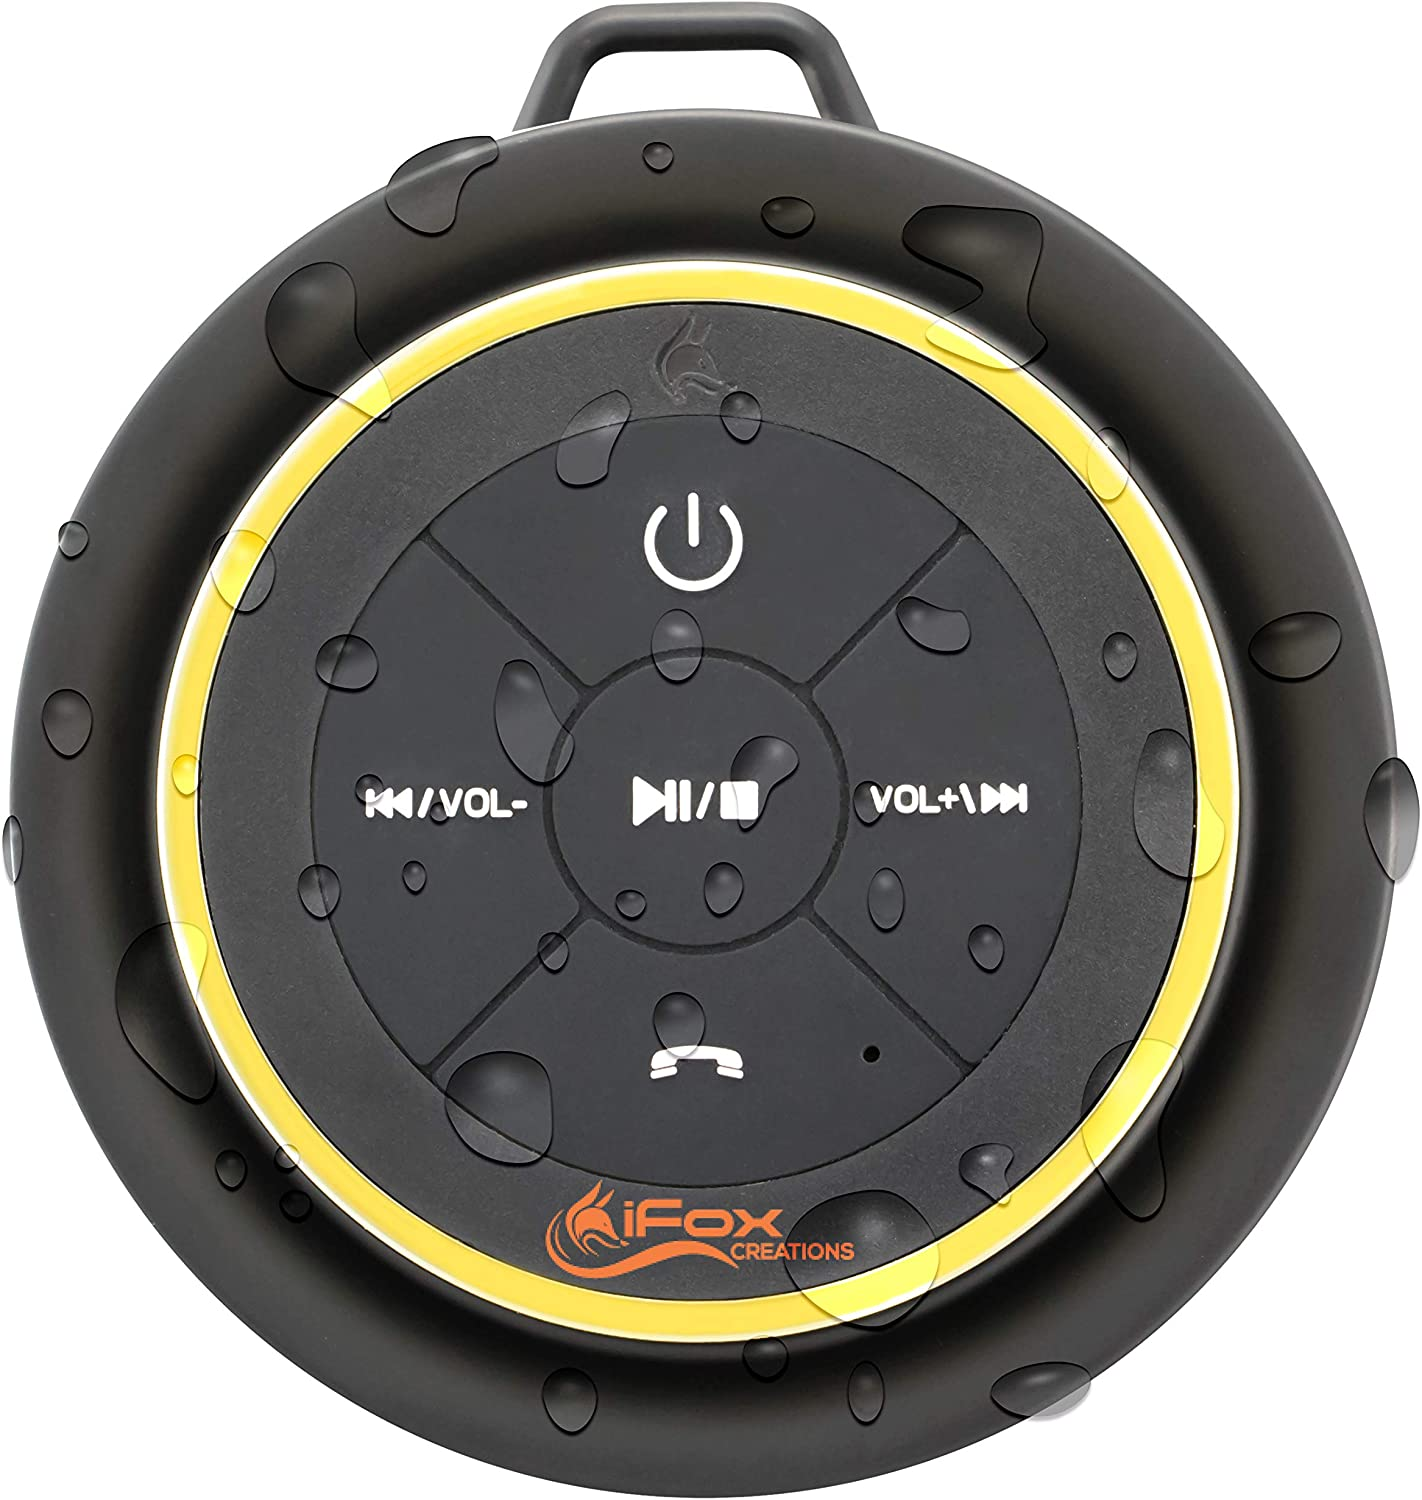 Image of a bluetooth shower speaker in colors black and yellow, navigation buttons facing front.